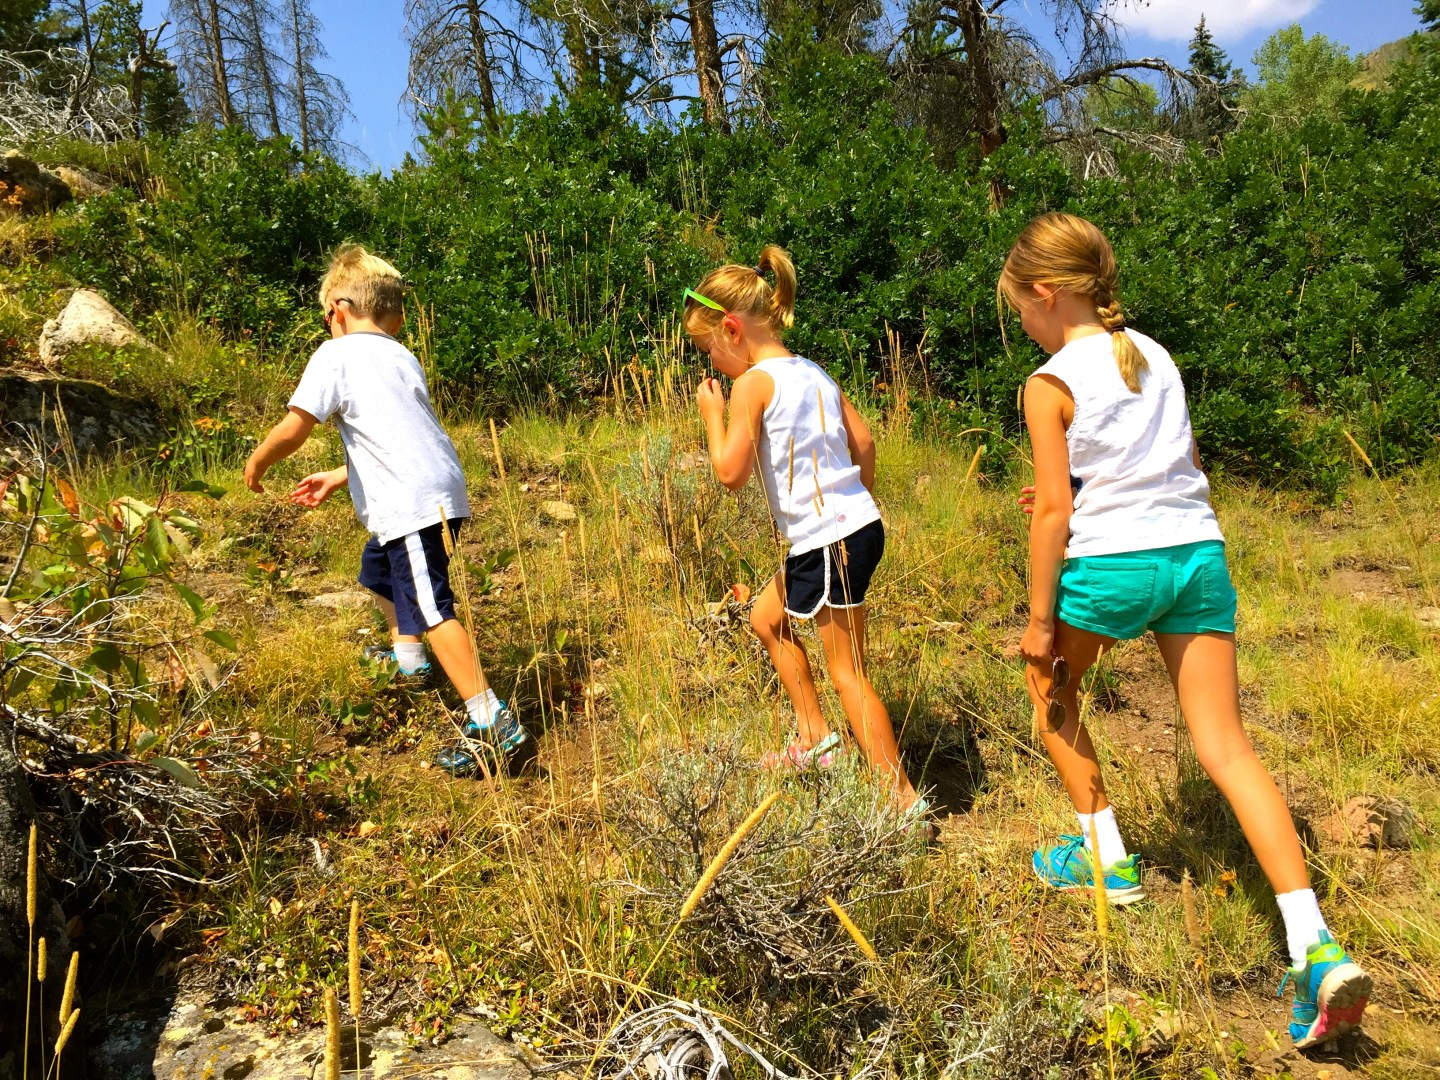 Things to do in Steamboat Springs in summer, hiking